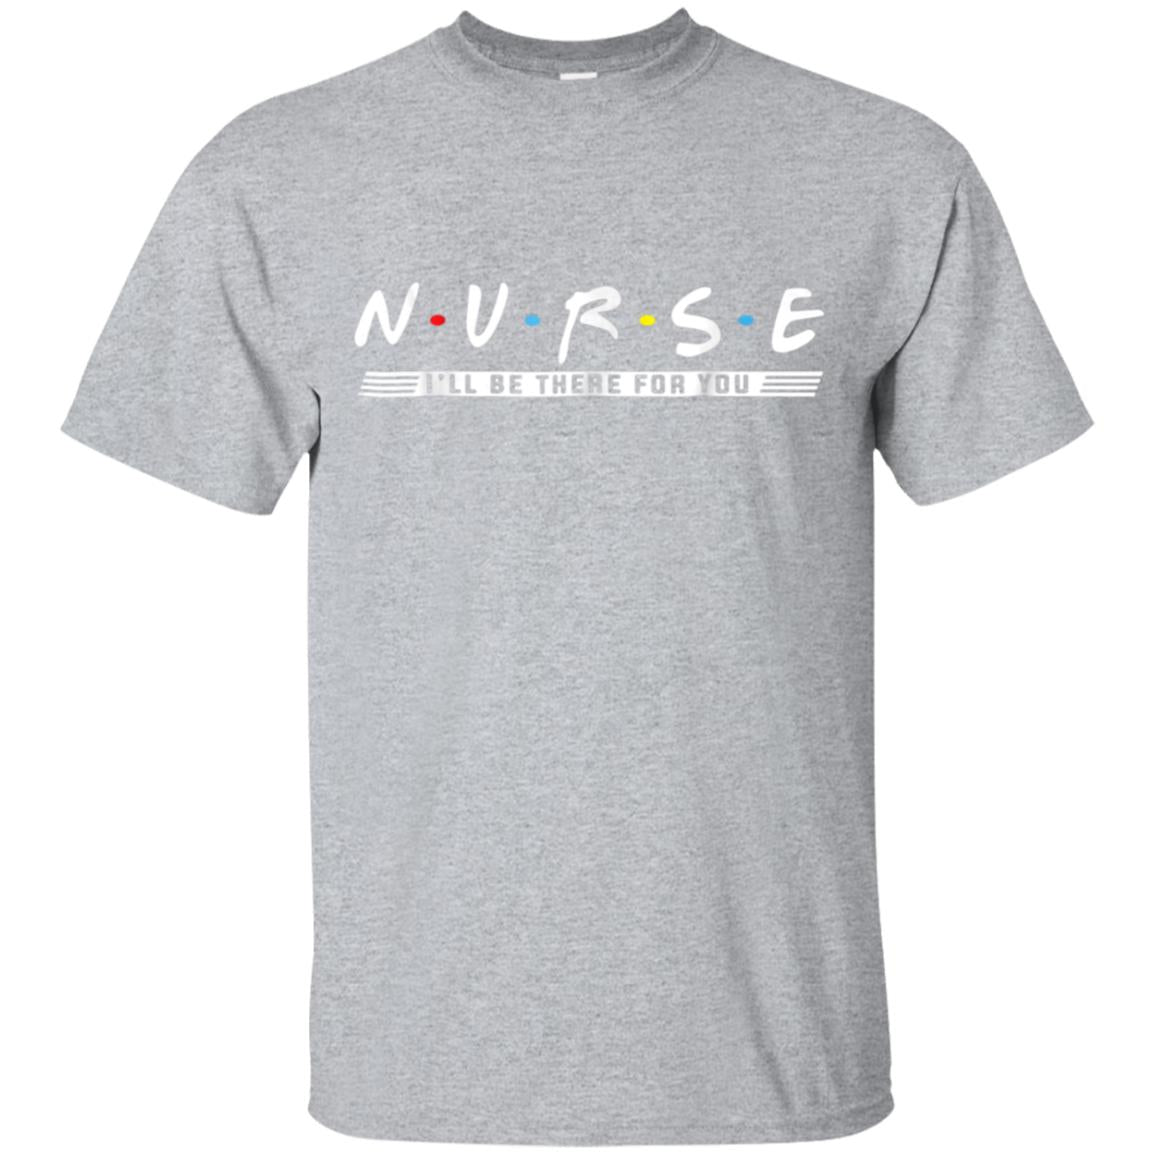 I'll Be There For You Cute Gift Shirt For Nurse 99promocode